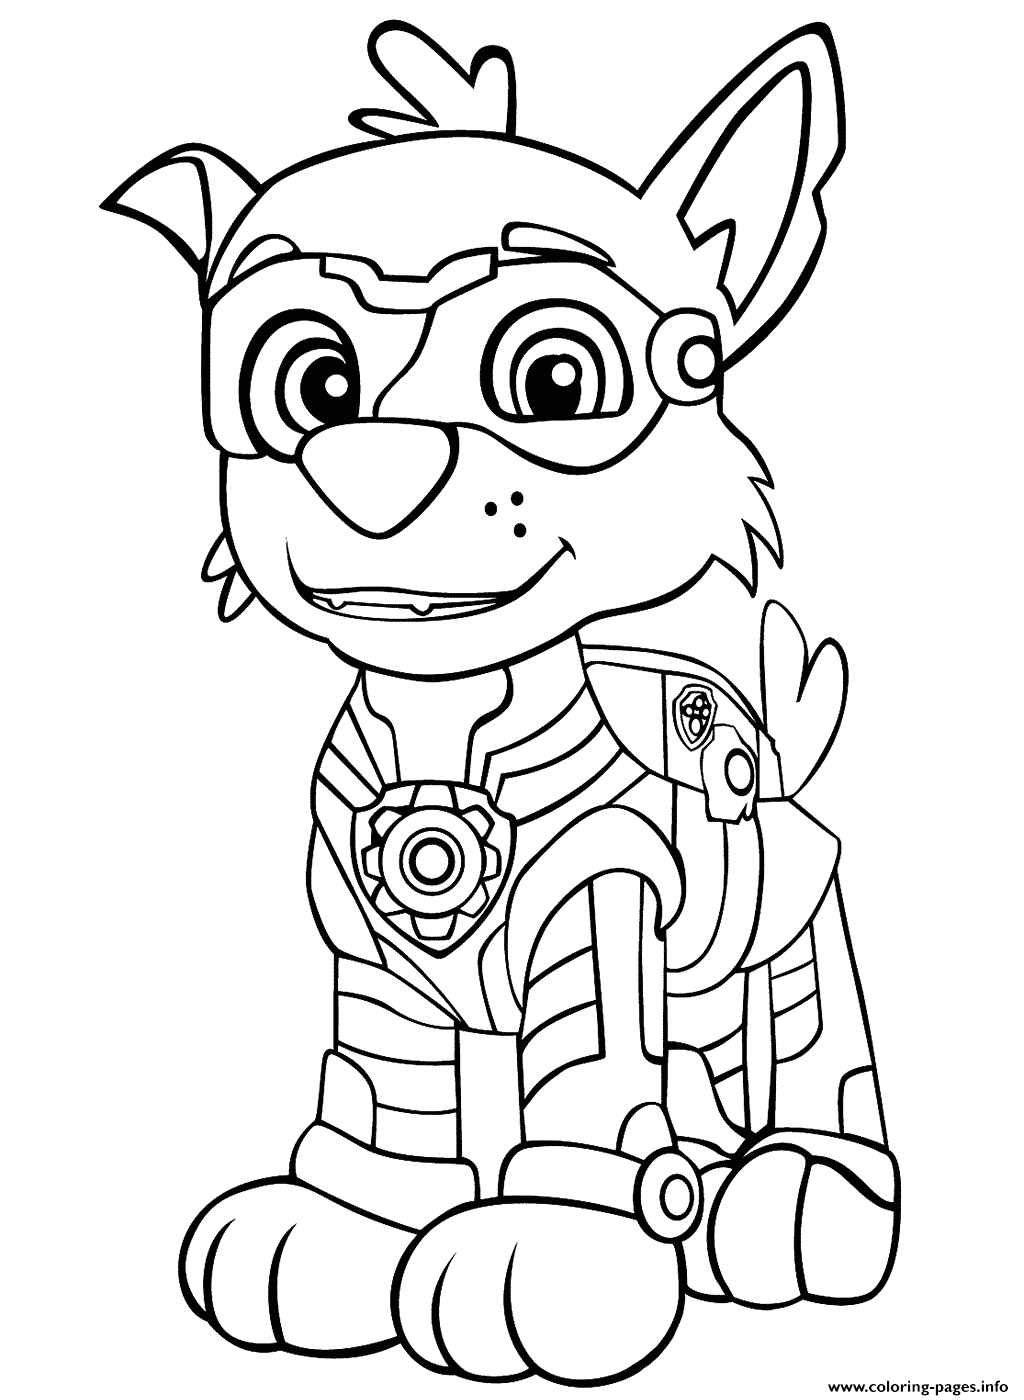 paw patrol mighty pups rockys printable coloring pages book